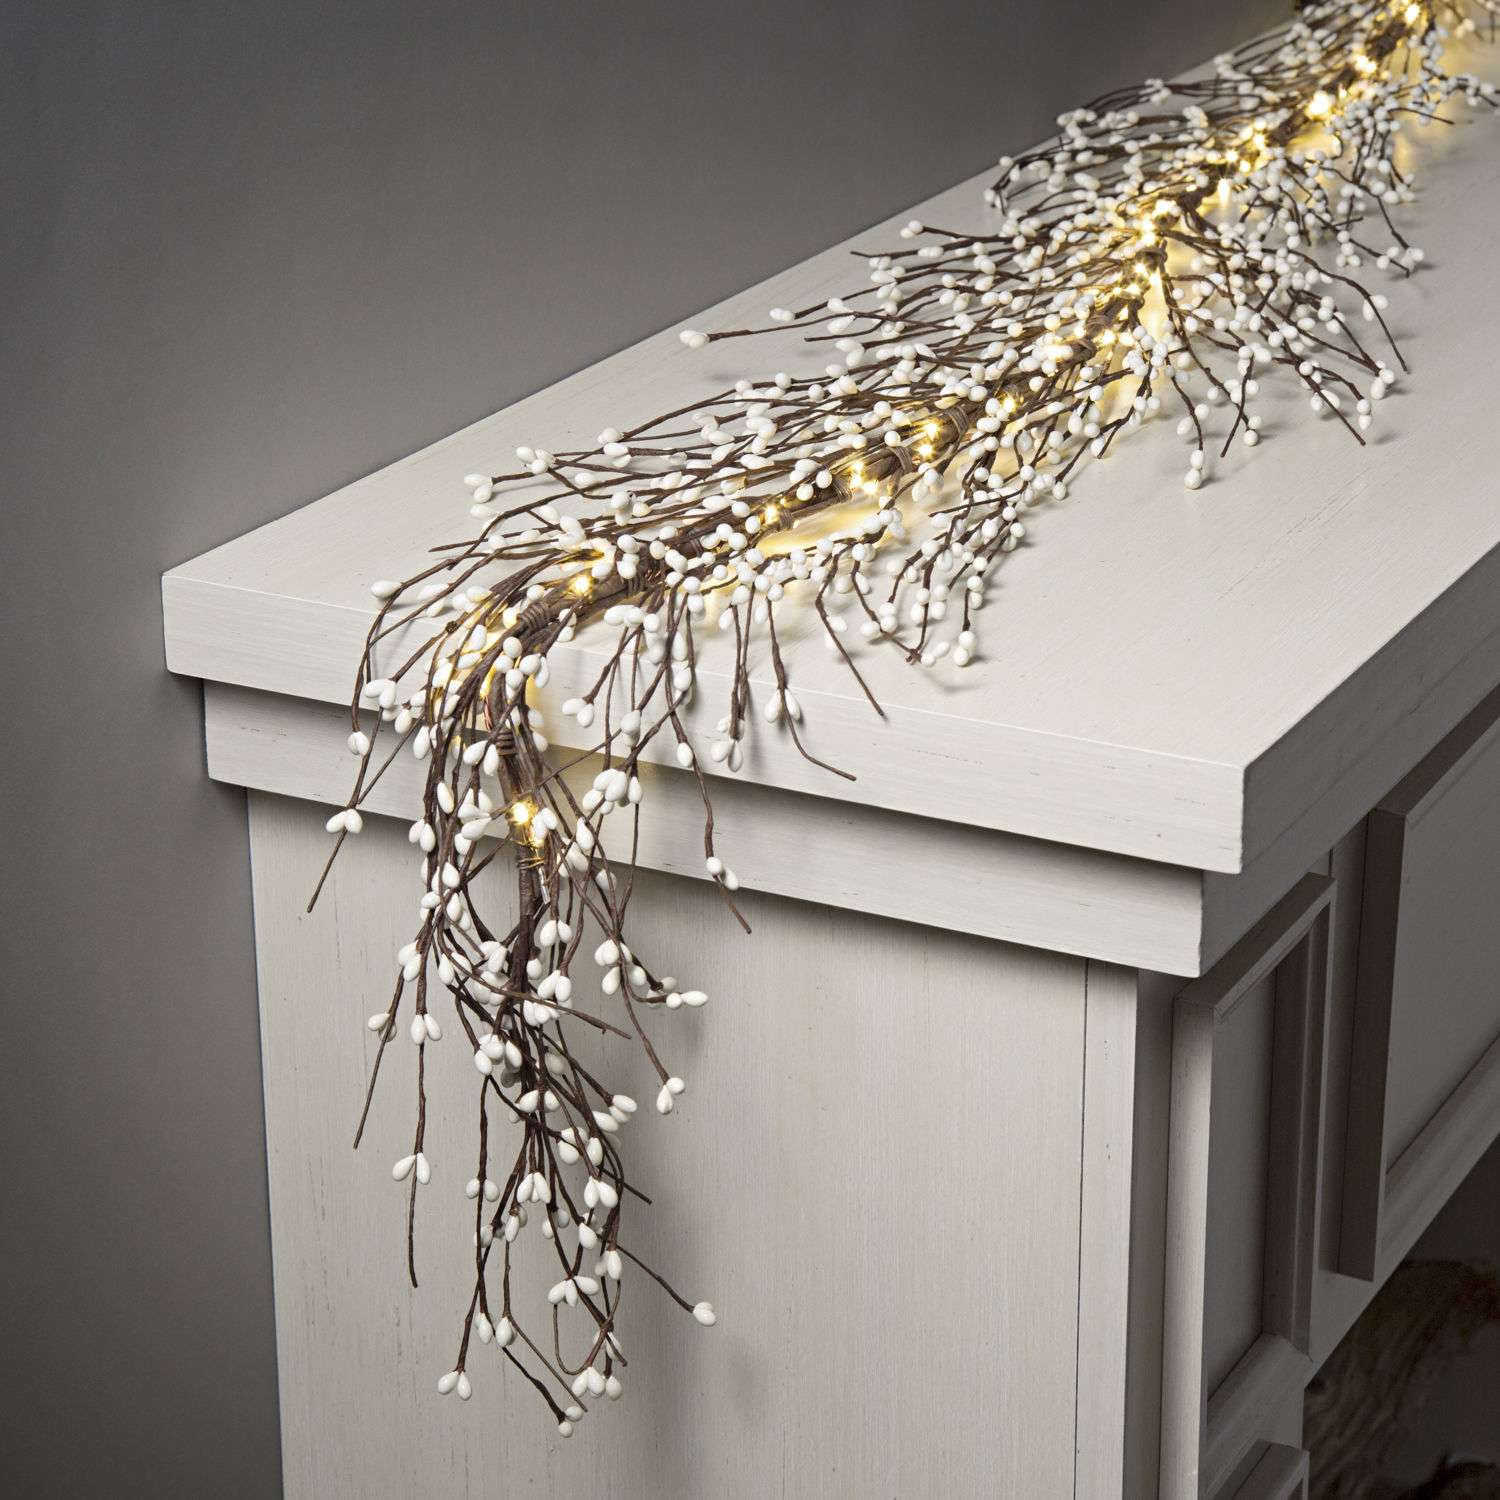 Lights Com Decor Decorative Lights Trees Wreaths Garlands White Berry Garland With 100 Leds